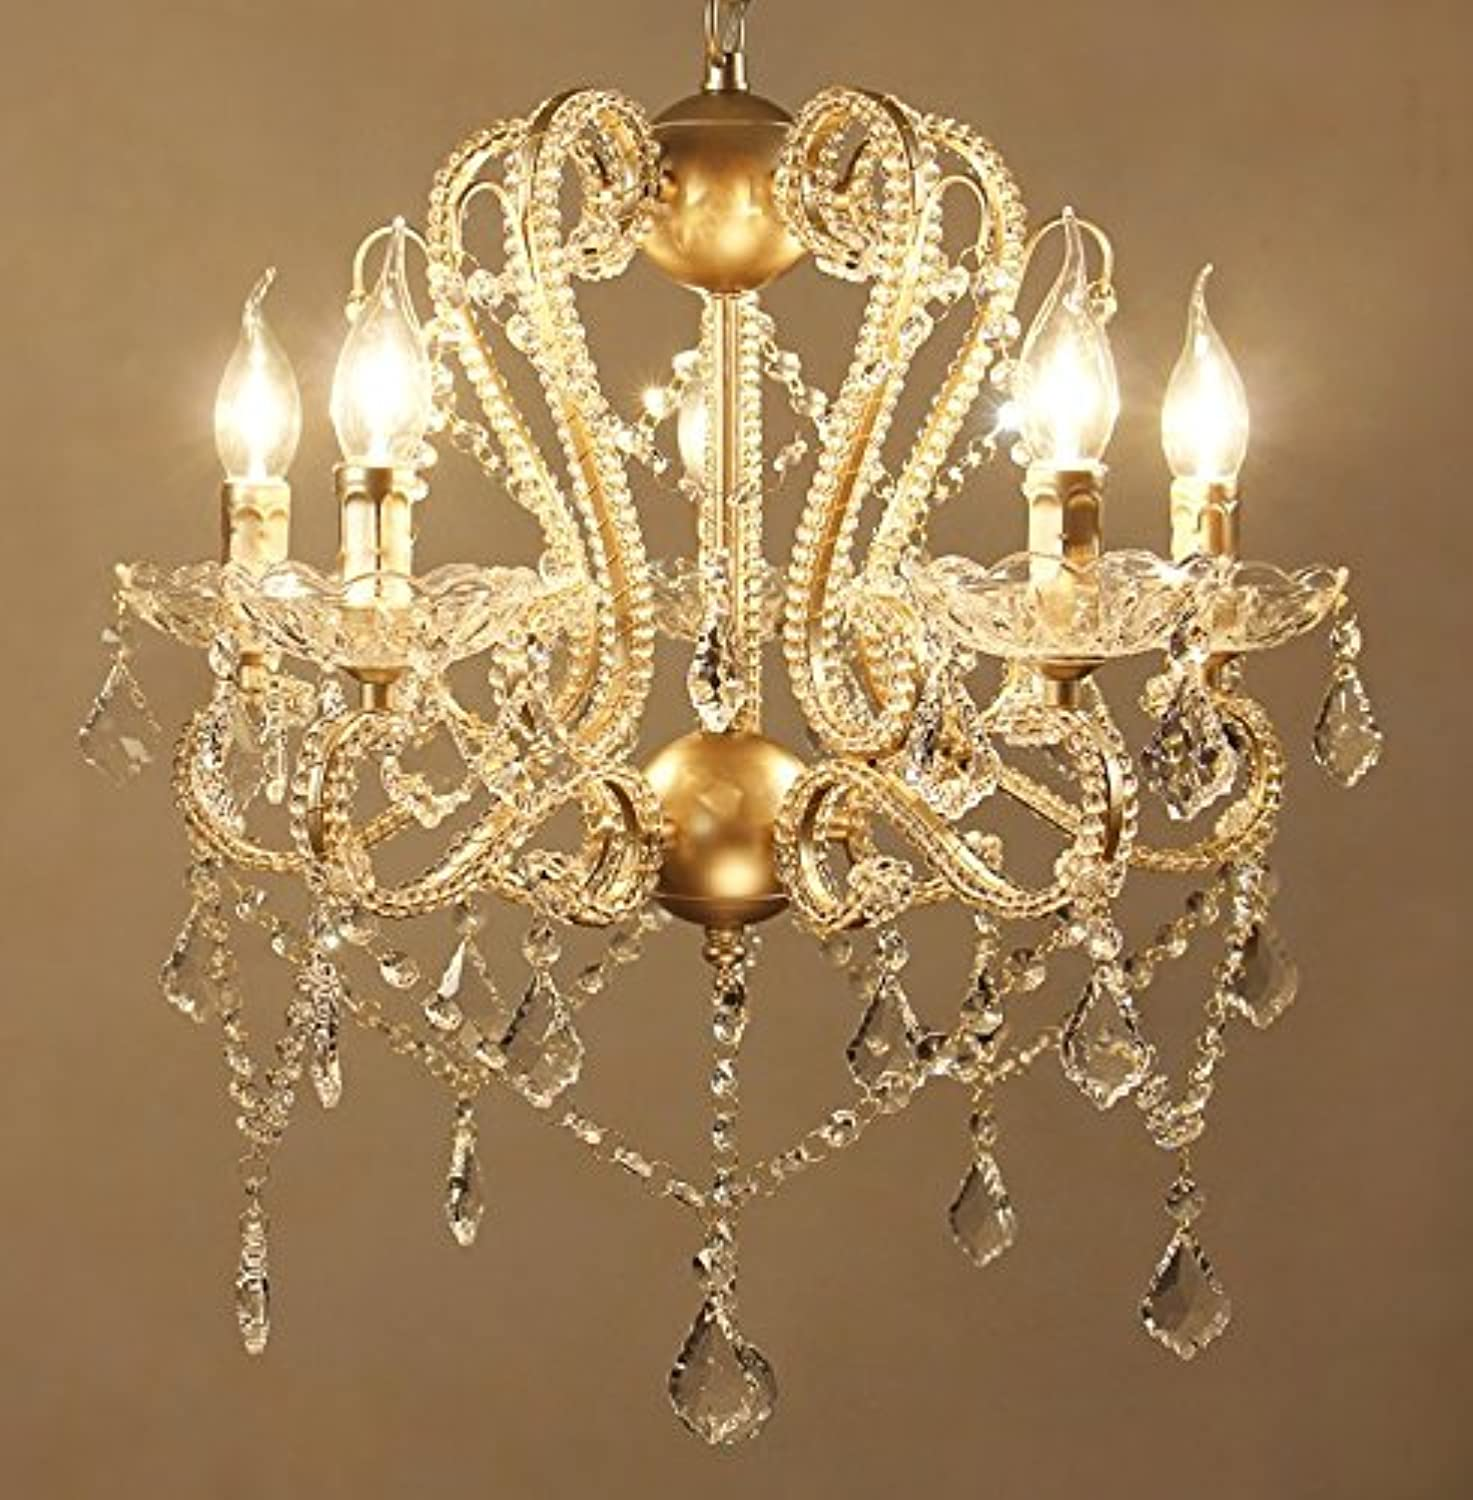 SUN-E American Vintage Chandeliers golden Metal Frame with Glass Beads & Maple Leaf Shape K9 Crystals Pendant Ceiling Fixture Lamp W22  H26